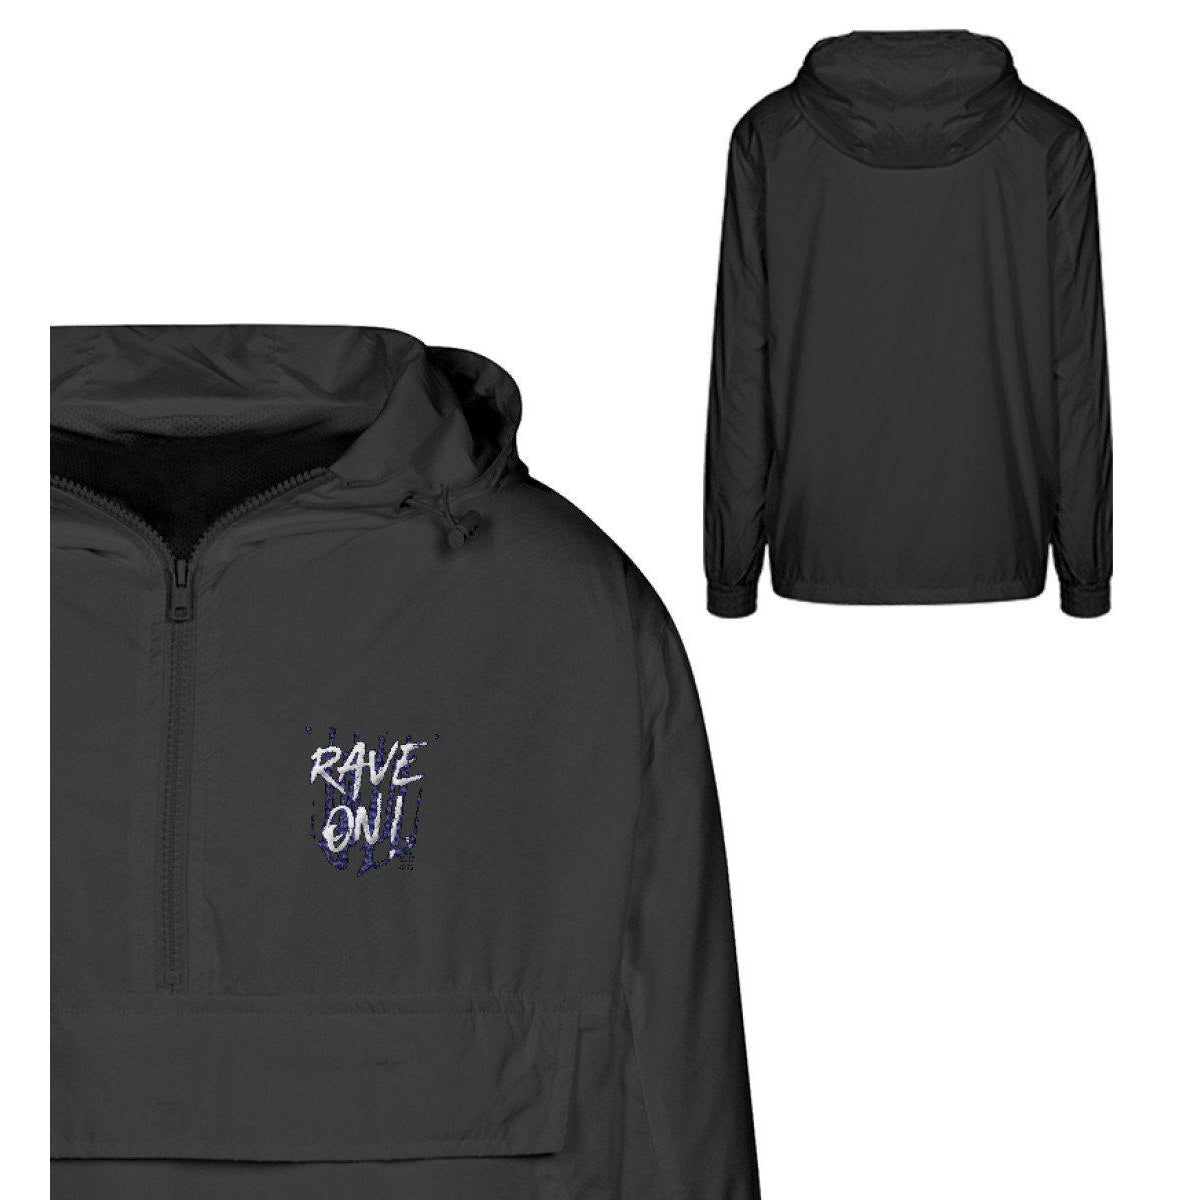 Rave On!® - B2k16 Urban Windbreaker mit Stick Urban Windbreaker mit Stick S - Rave On!® der Club & Techno Szene Shop für Coole Junge Mode Streetwear Style & Fashion Outfits + Sexy Festival 420 Stuff